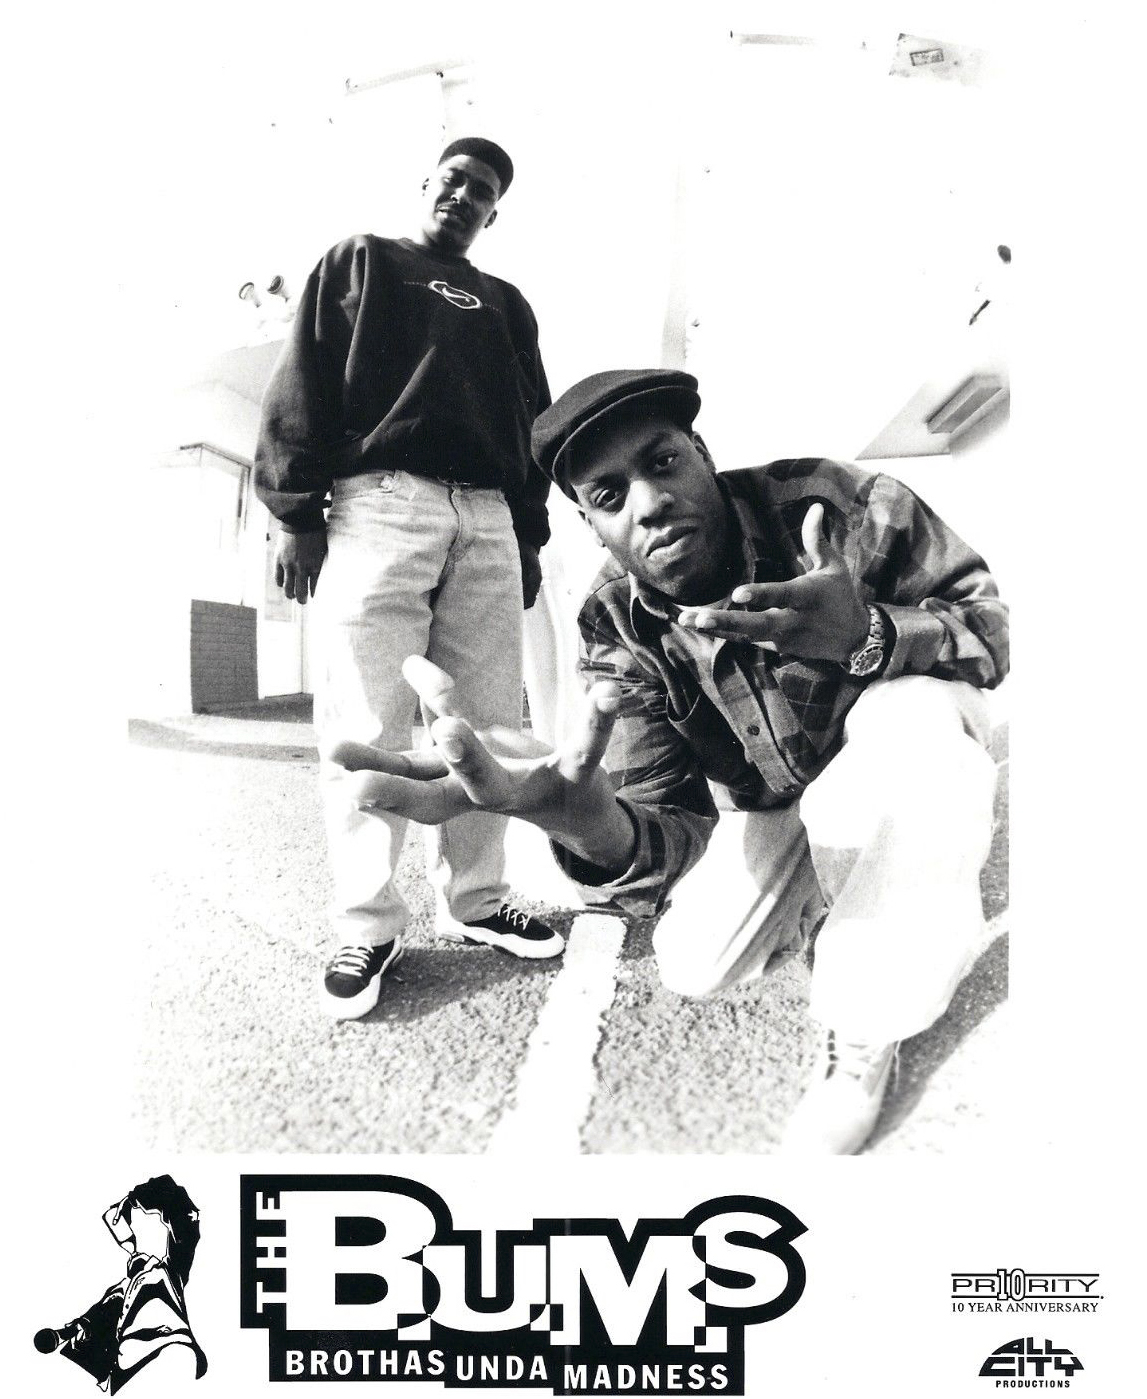 The B.U.M.S. Brothas Unda Madness Publicity Photo